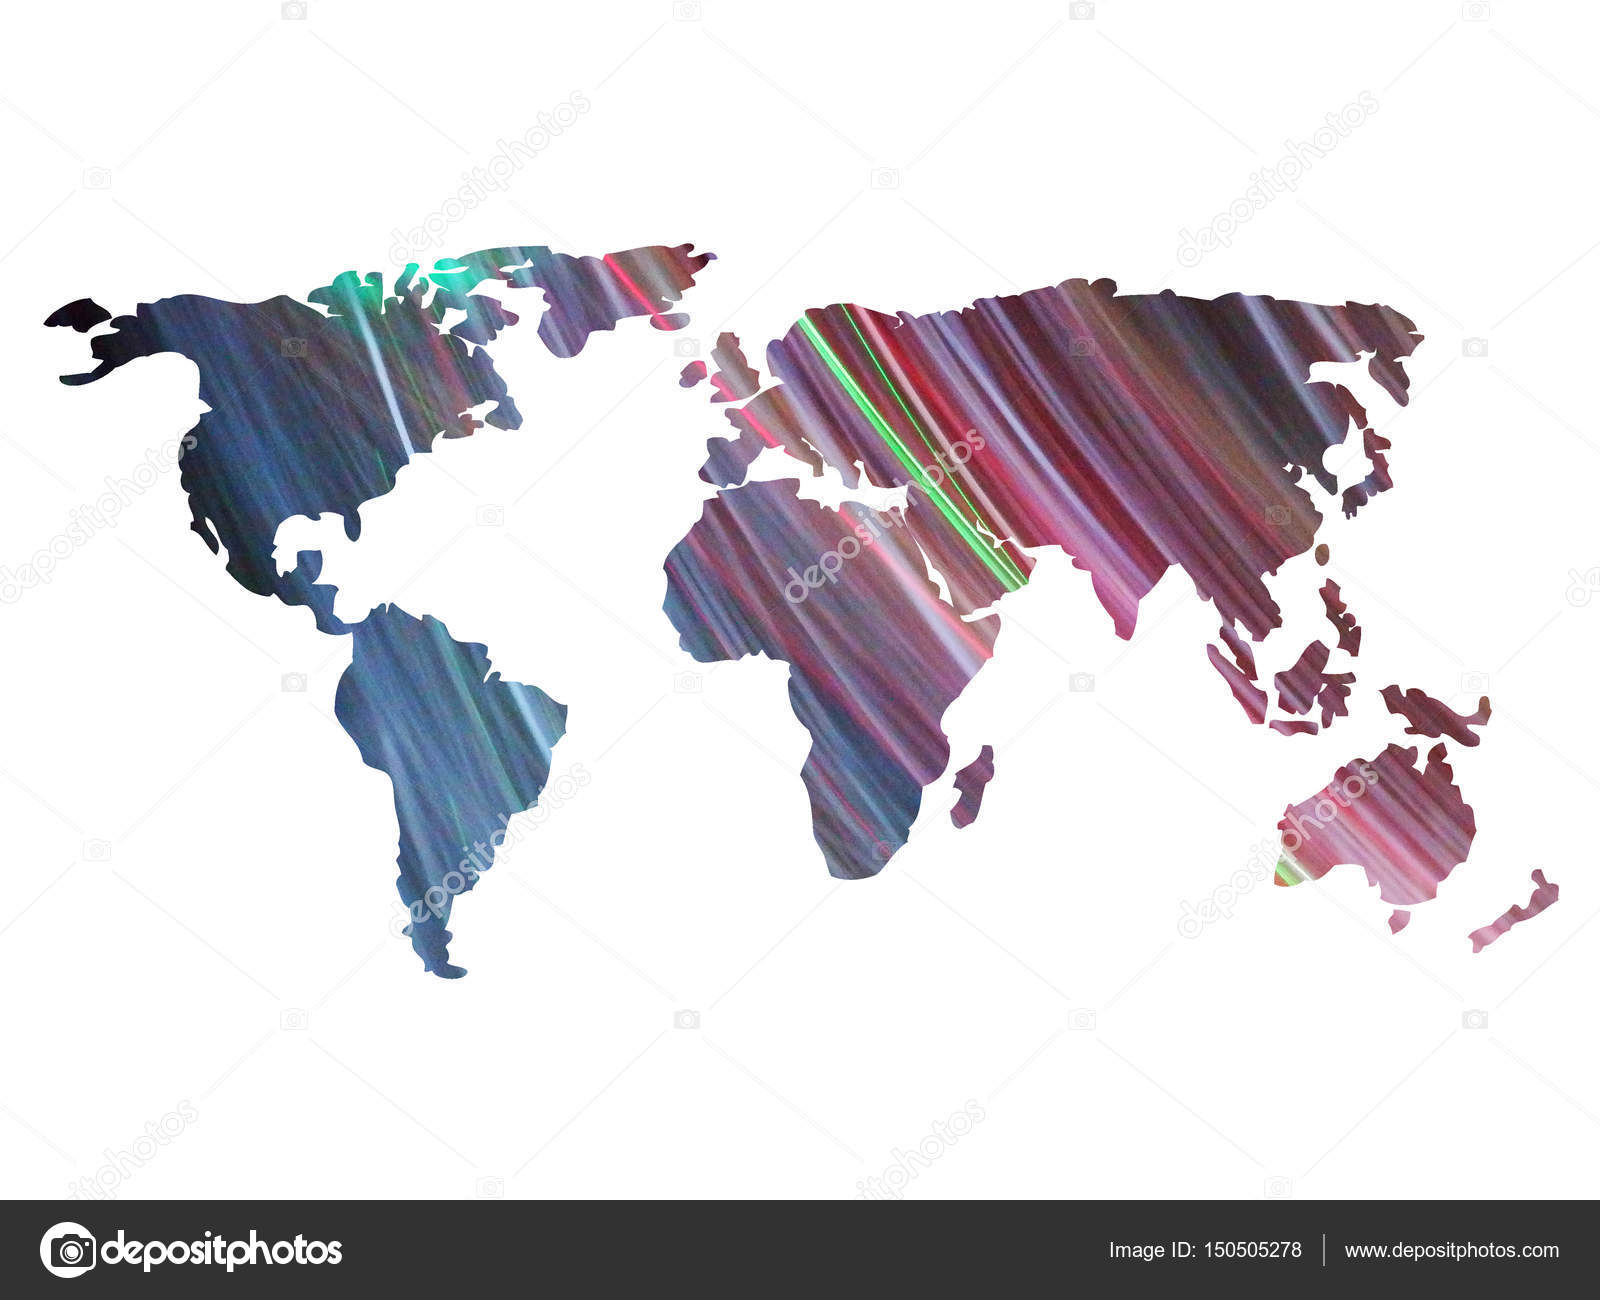 Color world map silhouettes of abstract lighting lights stock color abstract background with world map silhouette of moving lights isolated on white photo by pizla09 gumiabroncs Image collections